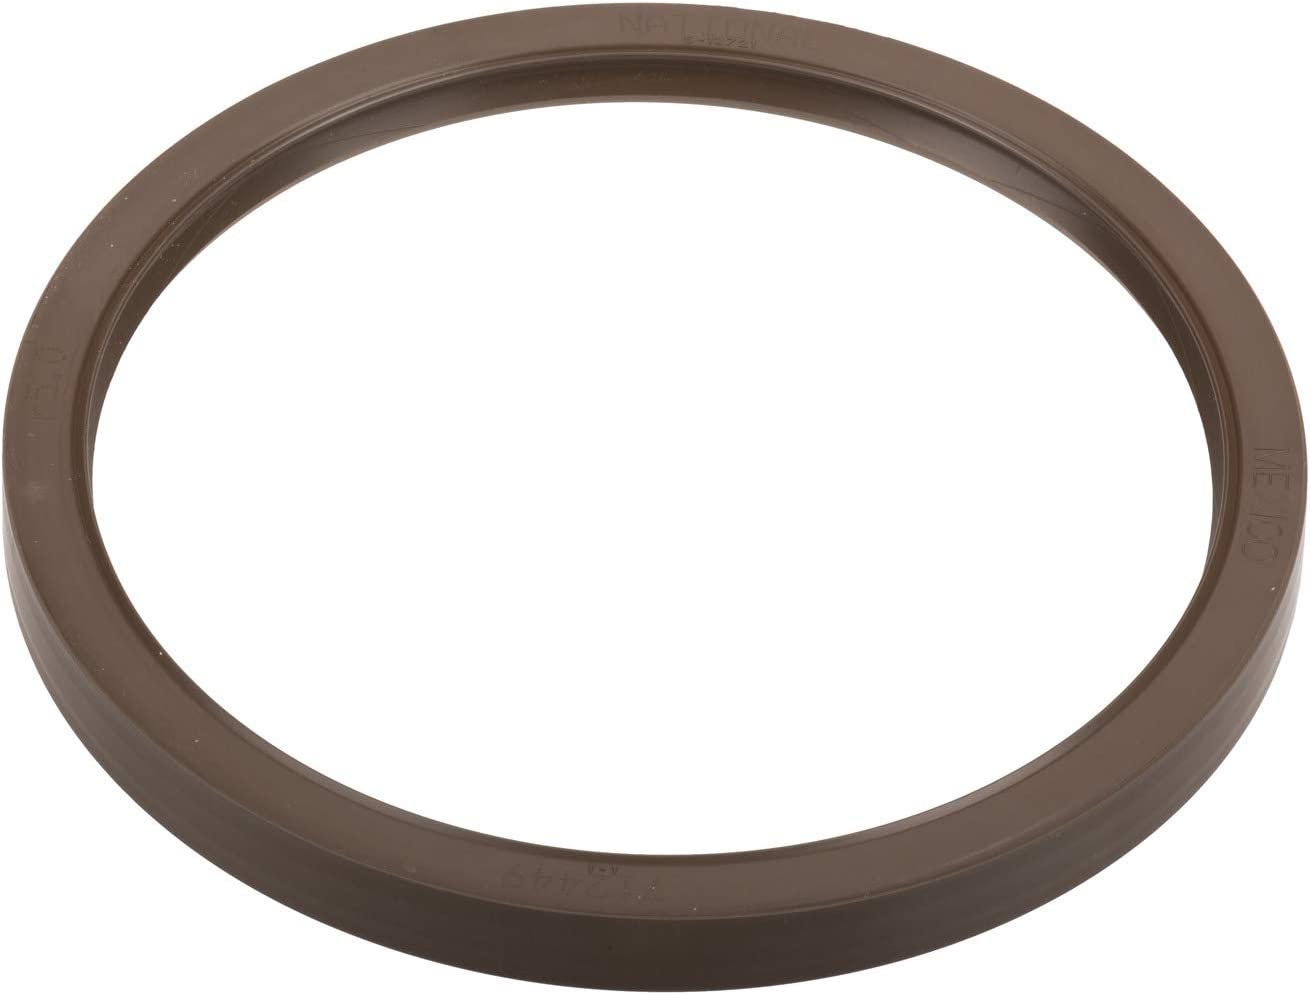 National 2021 new 712449 shipfree Oil Seal